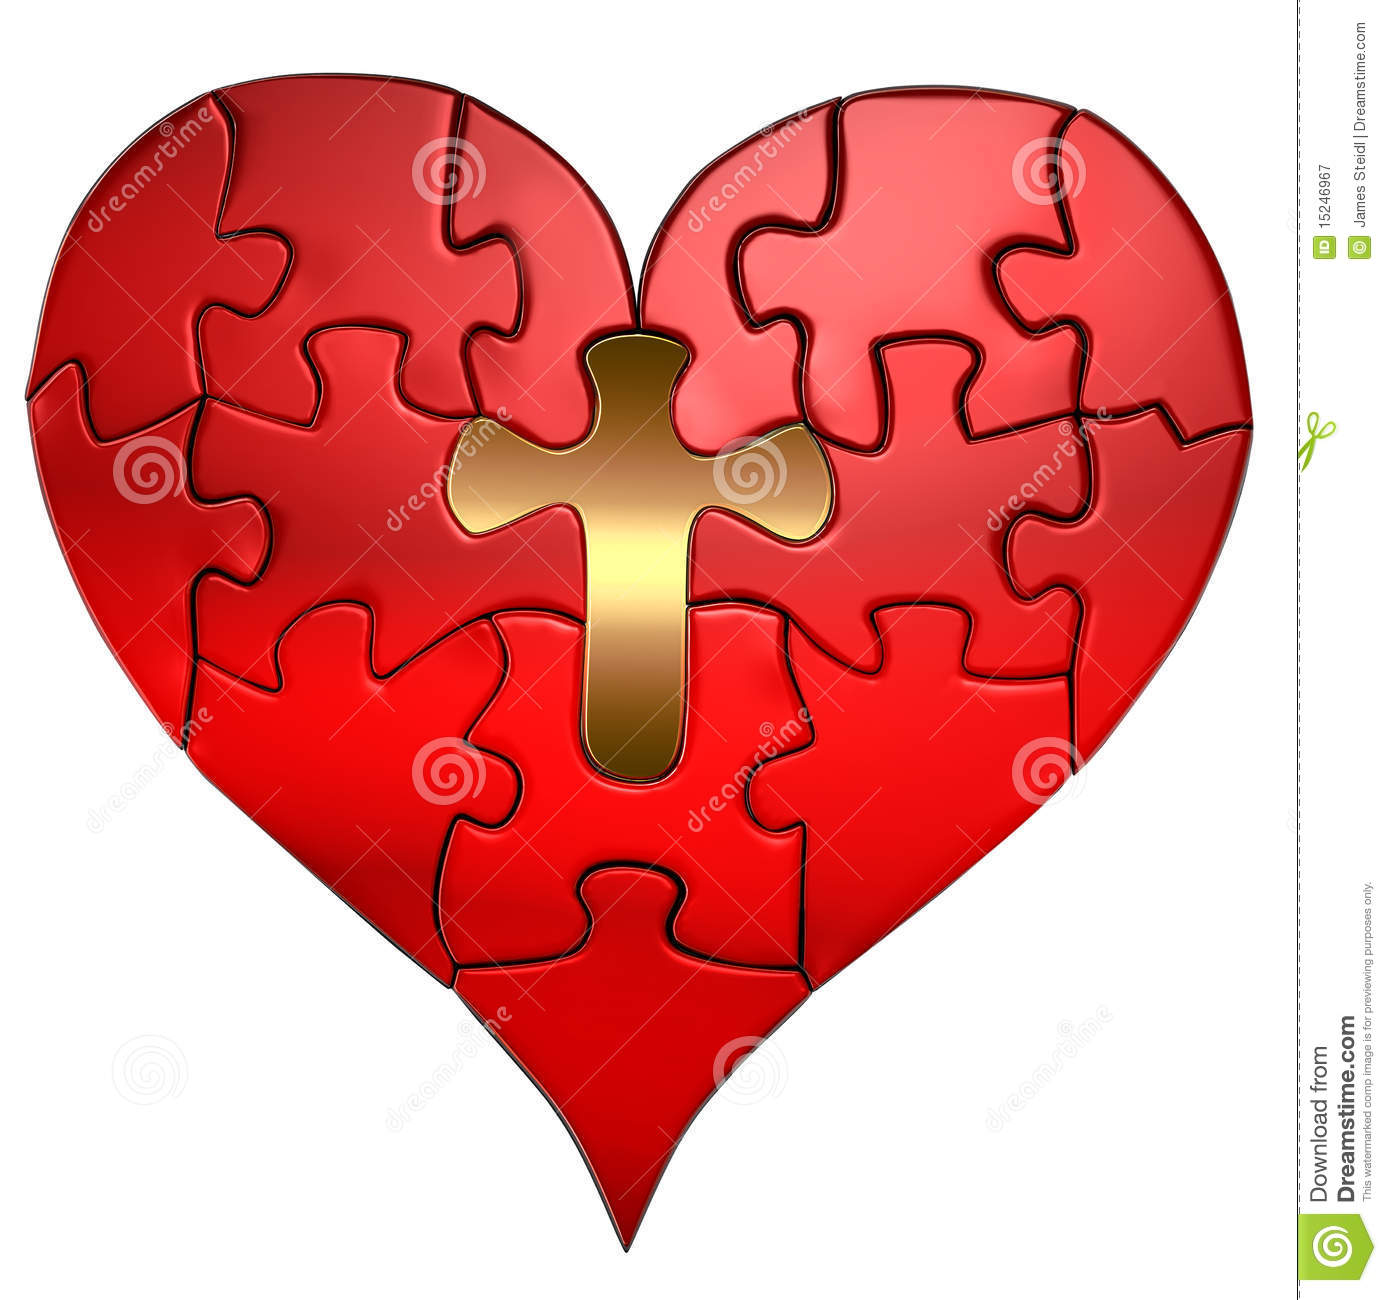 free cross and heart clipart - photo #33